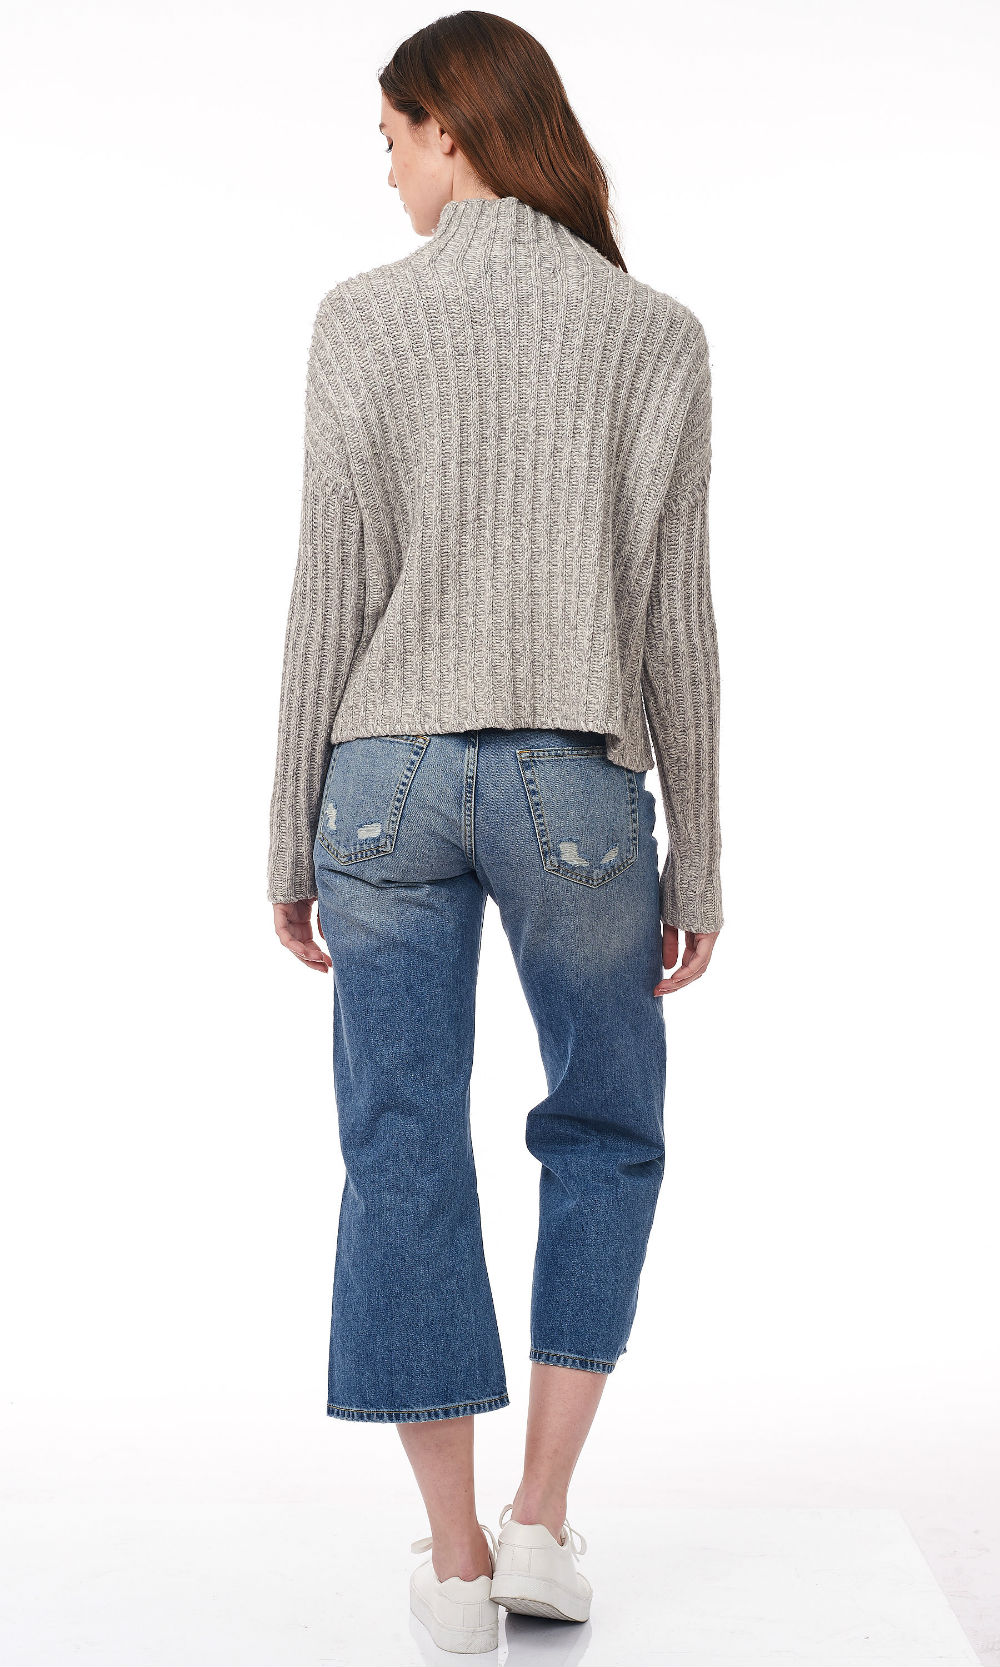 glacier turtle neck wide rib knitwear back